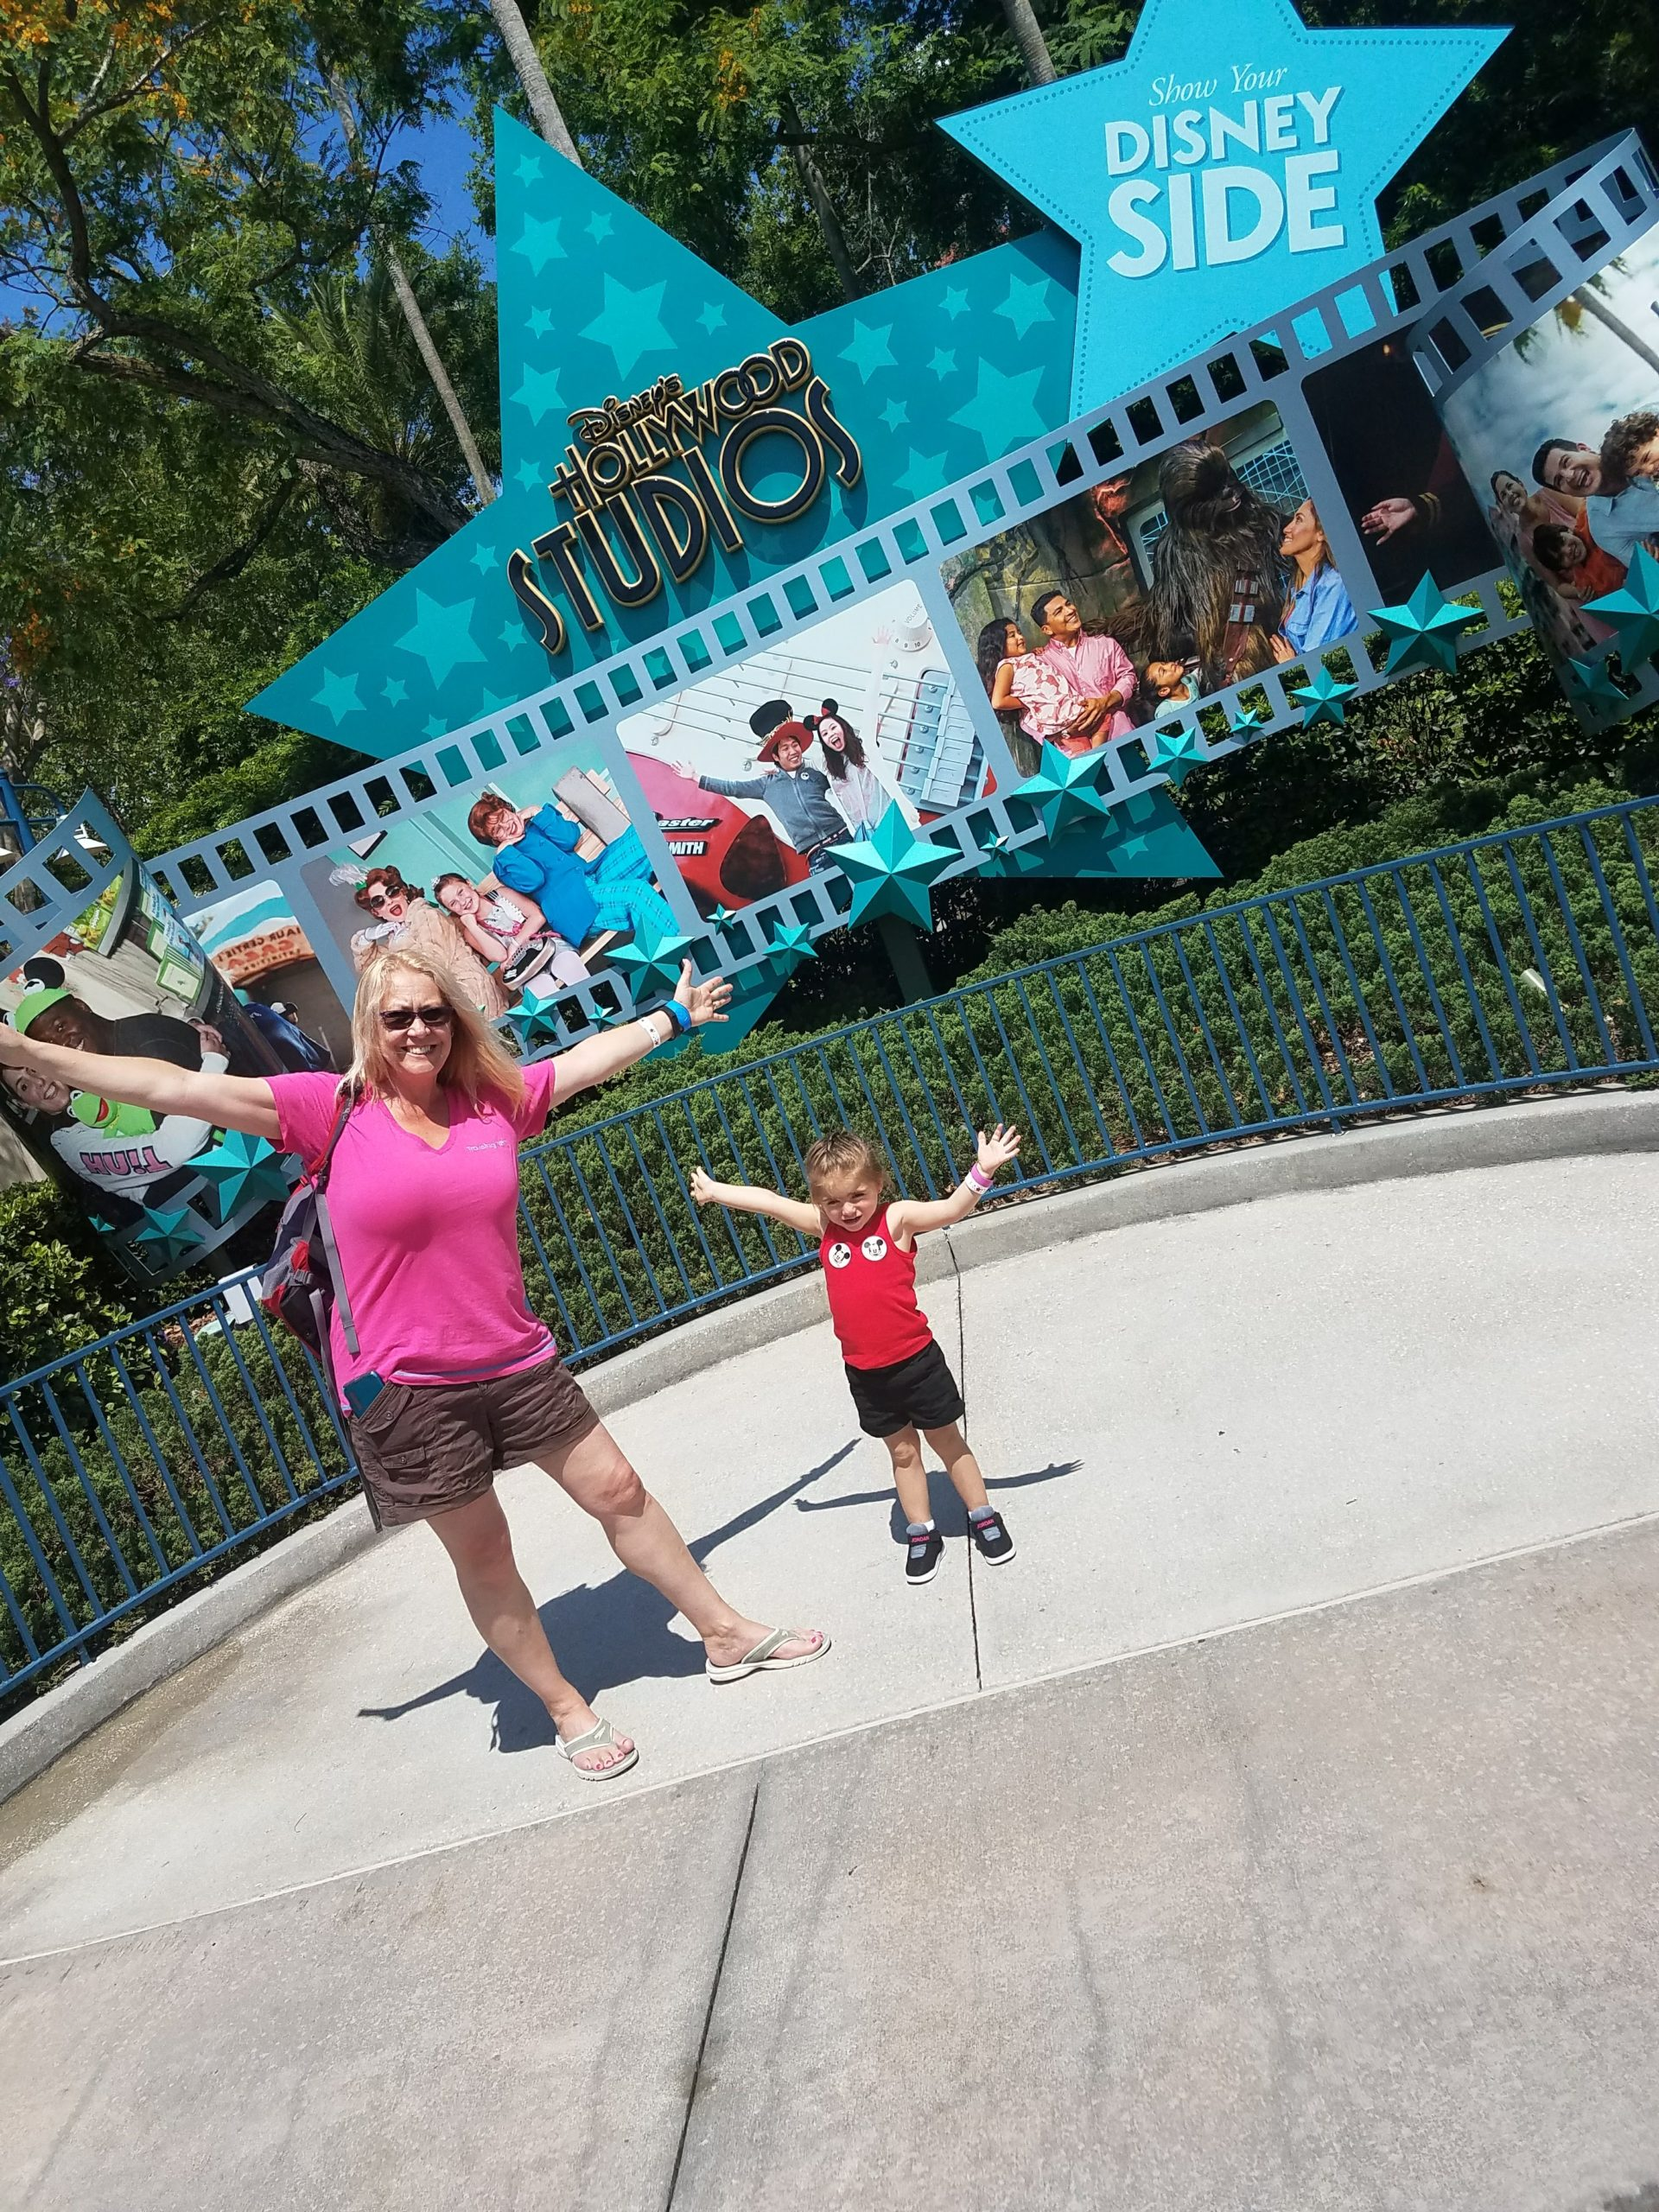 Strike a pose at Disney's Hollywood studios and get ready for these Disney toddler rides with grandparents